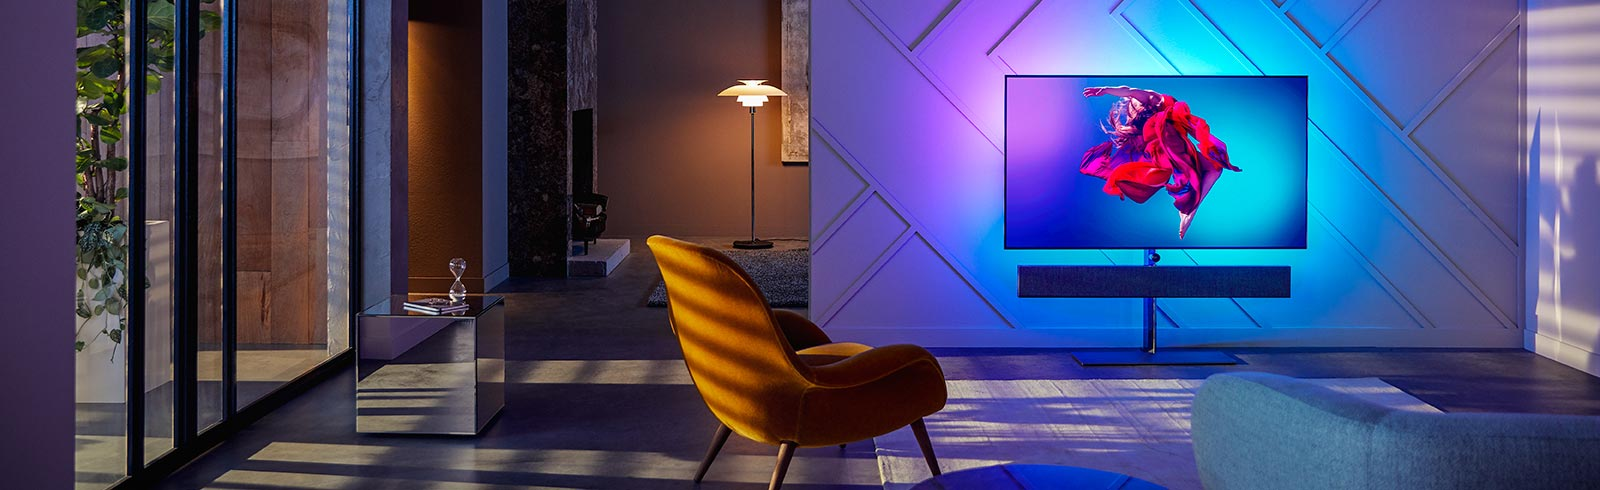 Philips launches two new premium OLED+ TVs and its 3rd Gen. P5 engine